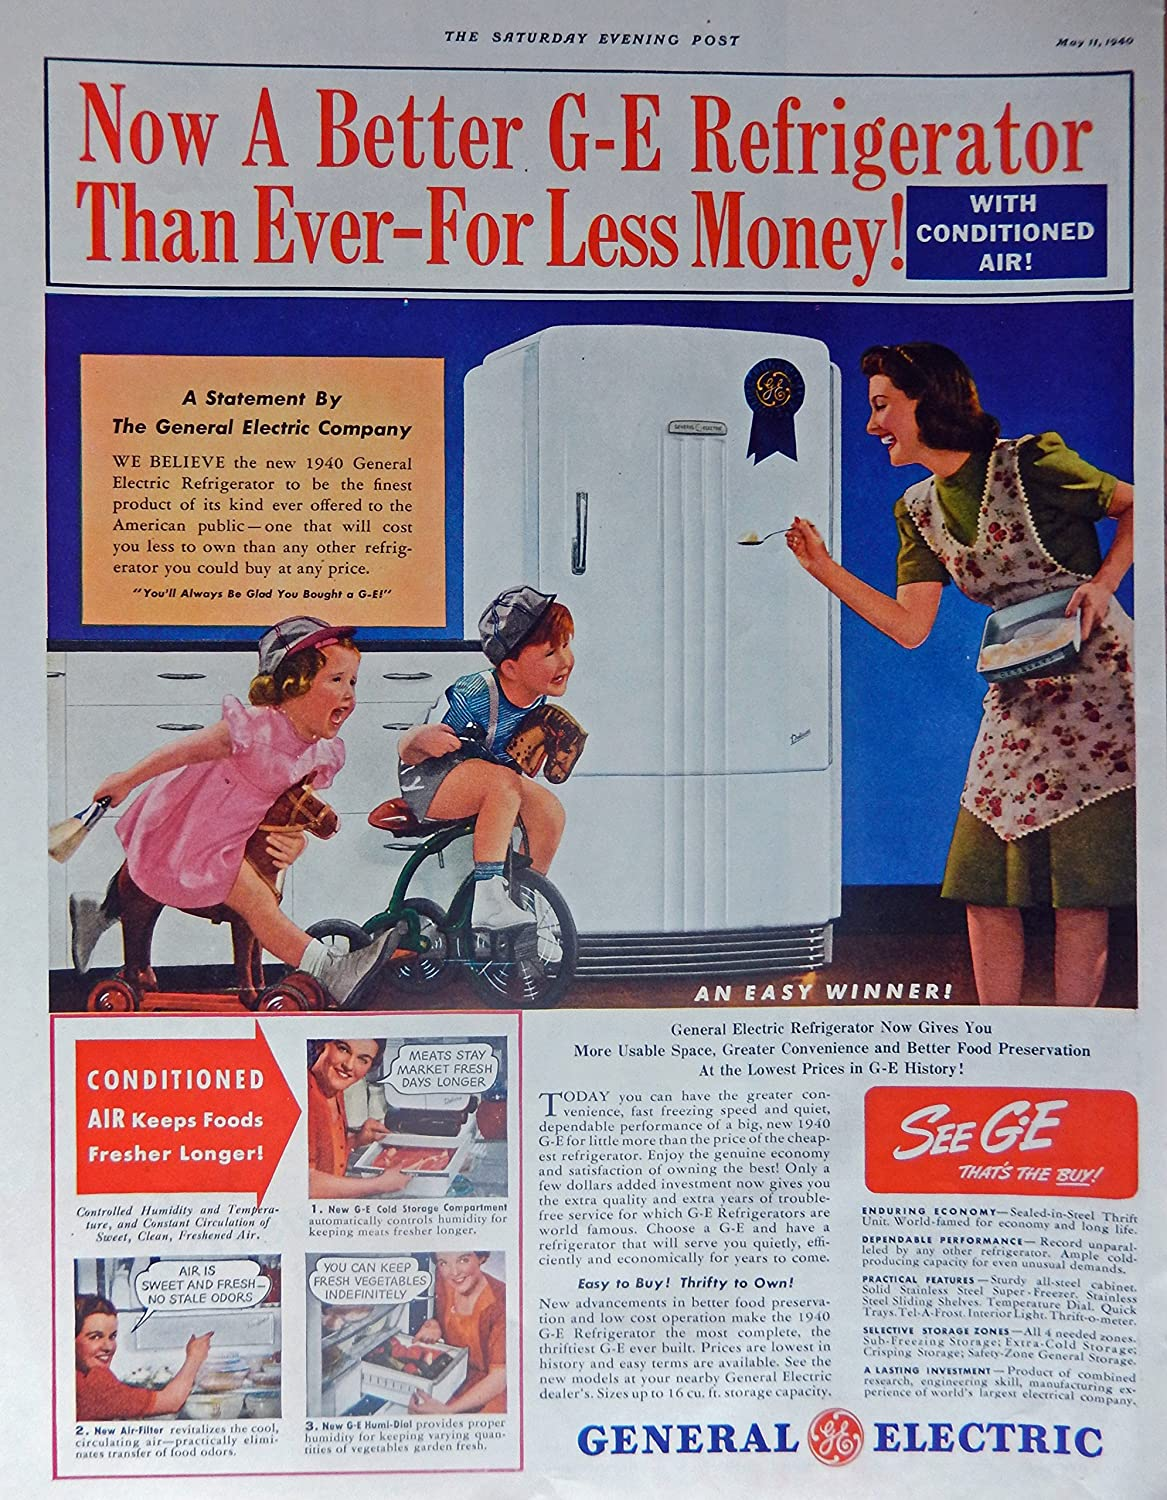 General Electric Refrigerator, 40's Print ad. Full Page Color Illustration (mother/kids playing) Original Vintage 1940 The Saturday Evening Post Magazine Print Art